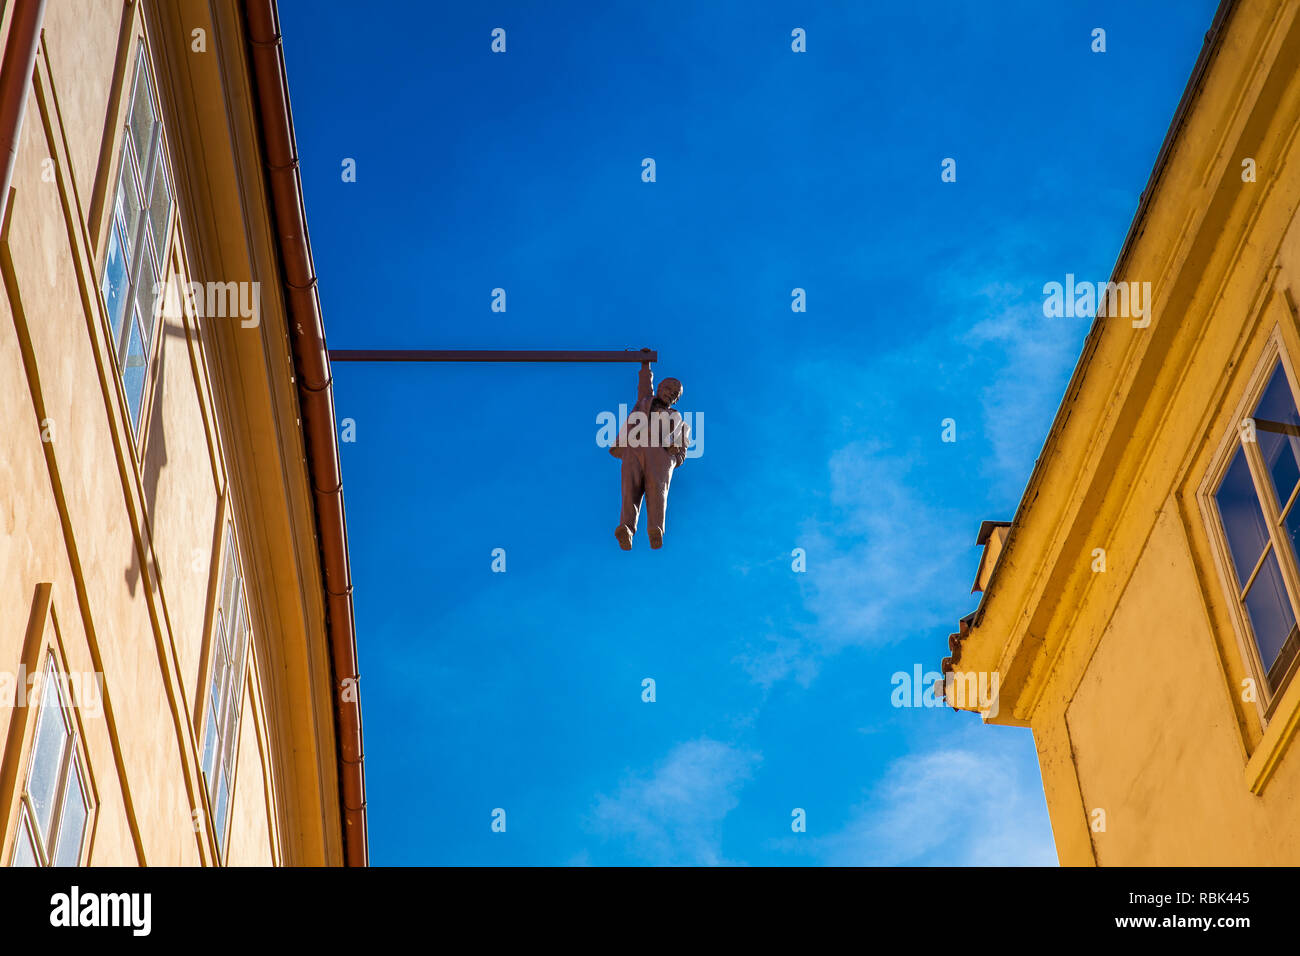 PRAGUE, CZECH REPUBLIC - APRIL, 2018: Sculpture of the psychoanalyst Sigmund Freud hanging by a hand called Man Hanging Out created by the artist Davi - Stock Image